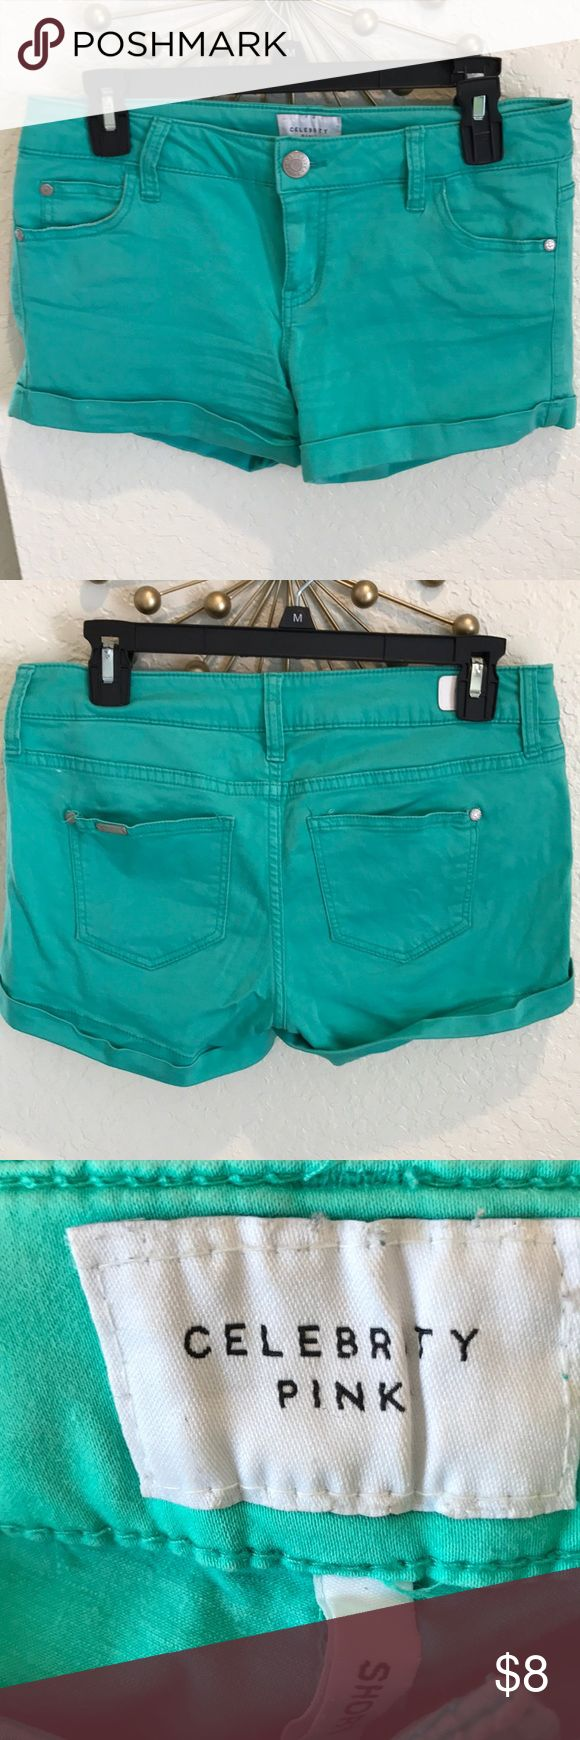 Teal shorts size 7 Celebrity PINK teal shorts size 7/28. Stretchy material. Worn but in good condition. Very comfy. Celebrity Pink Shorts Jean Shorts